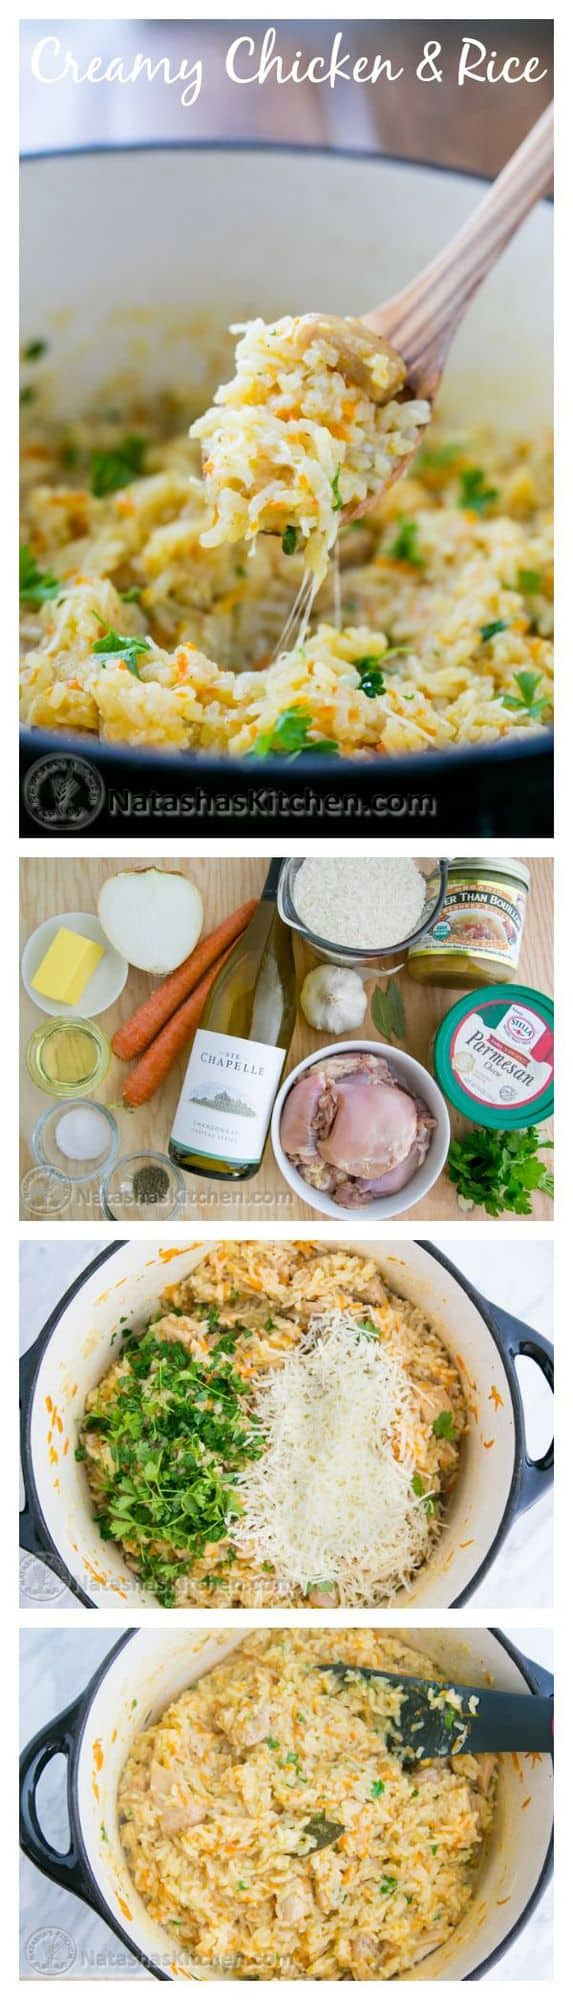 Creamy Chicken and Rice Recipe (a one-pot meal). You'll be going back for refills!